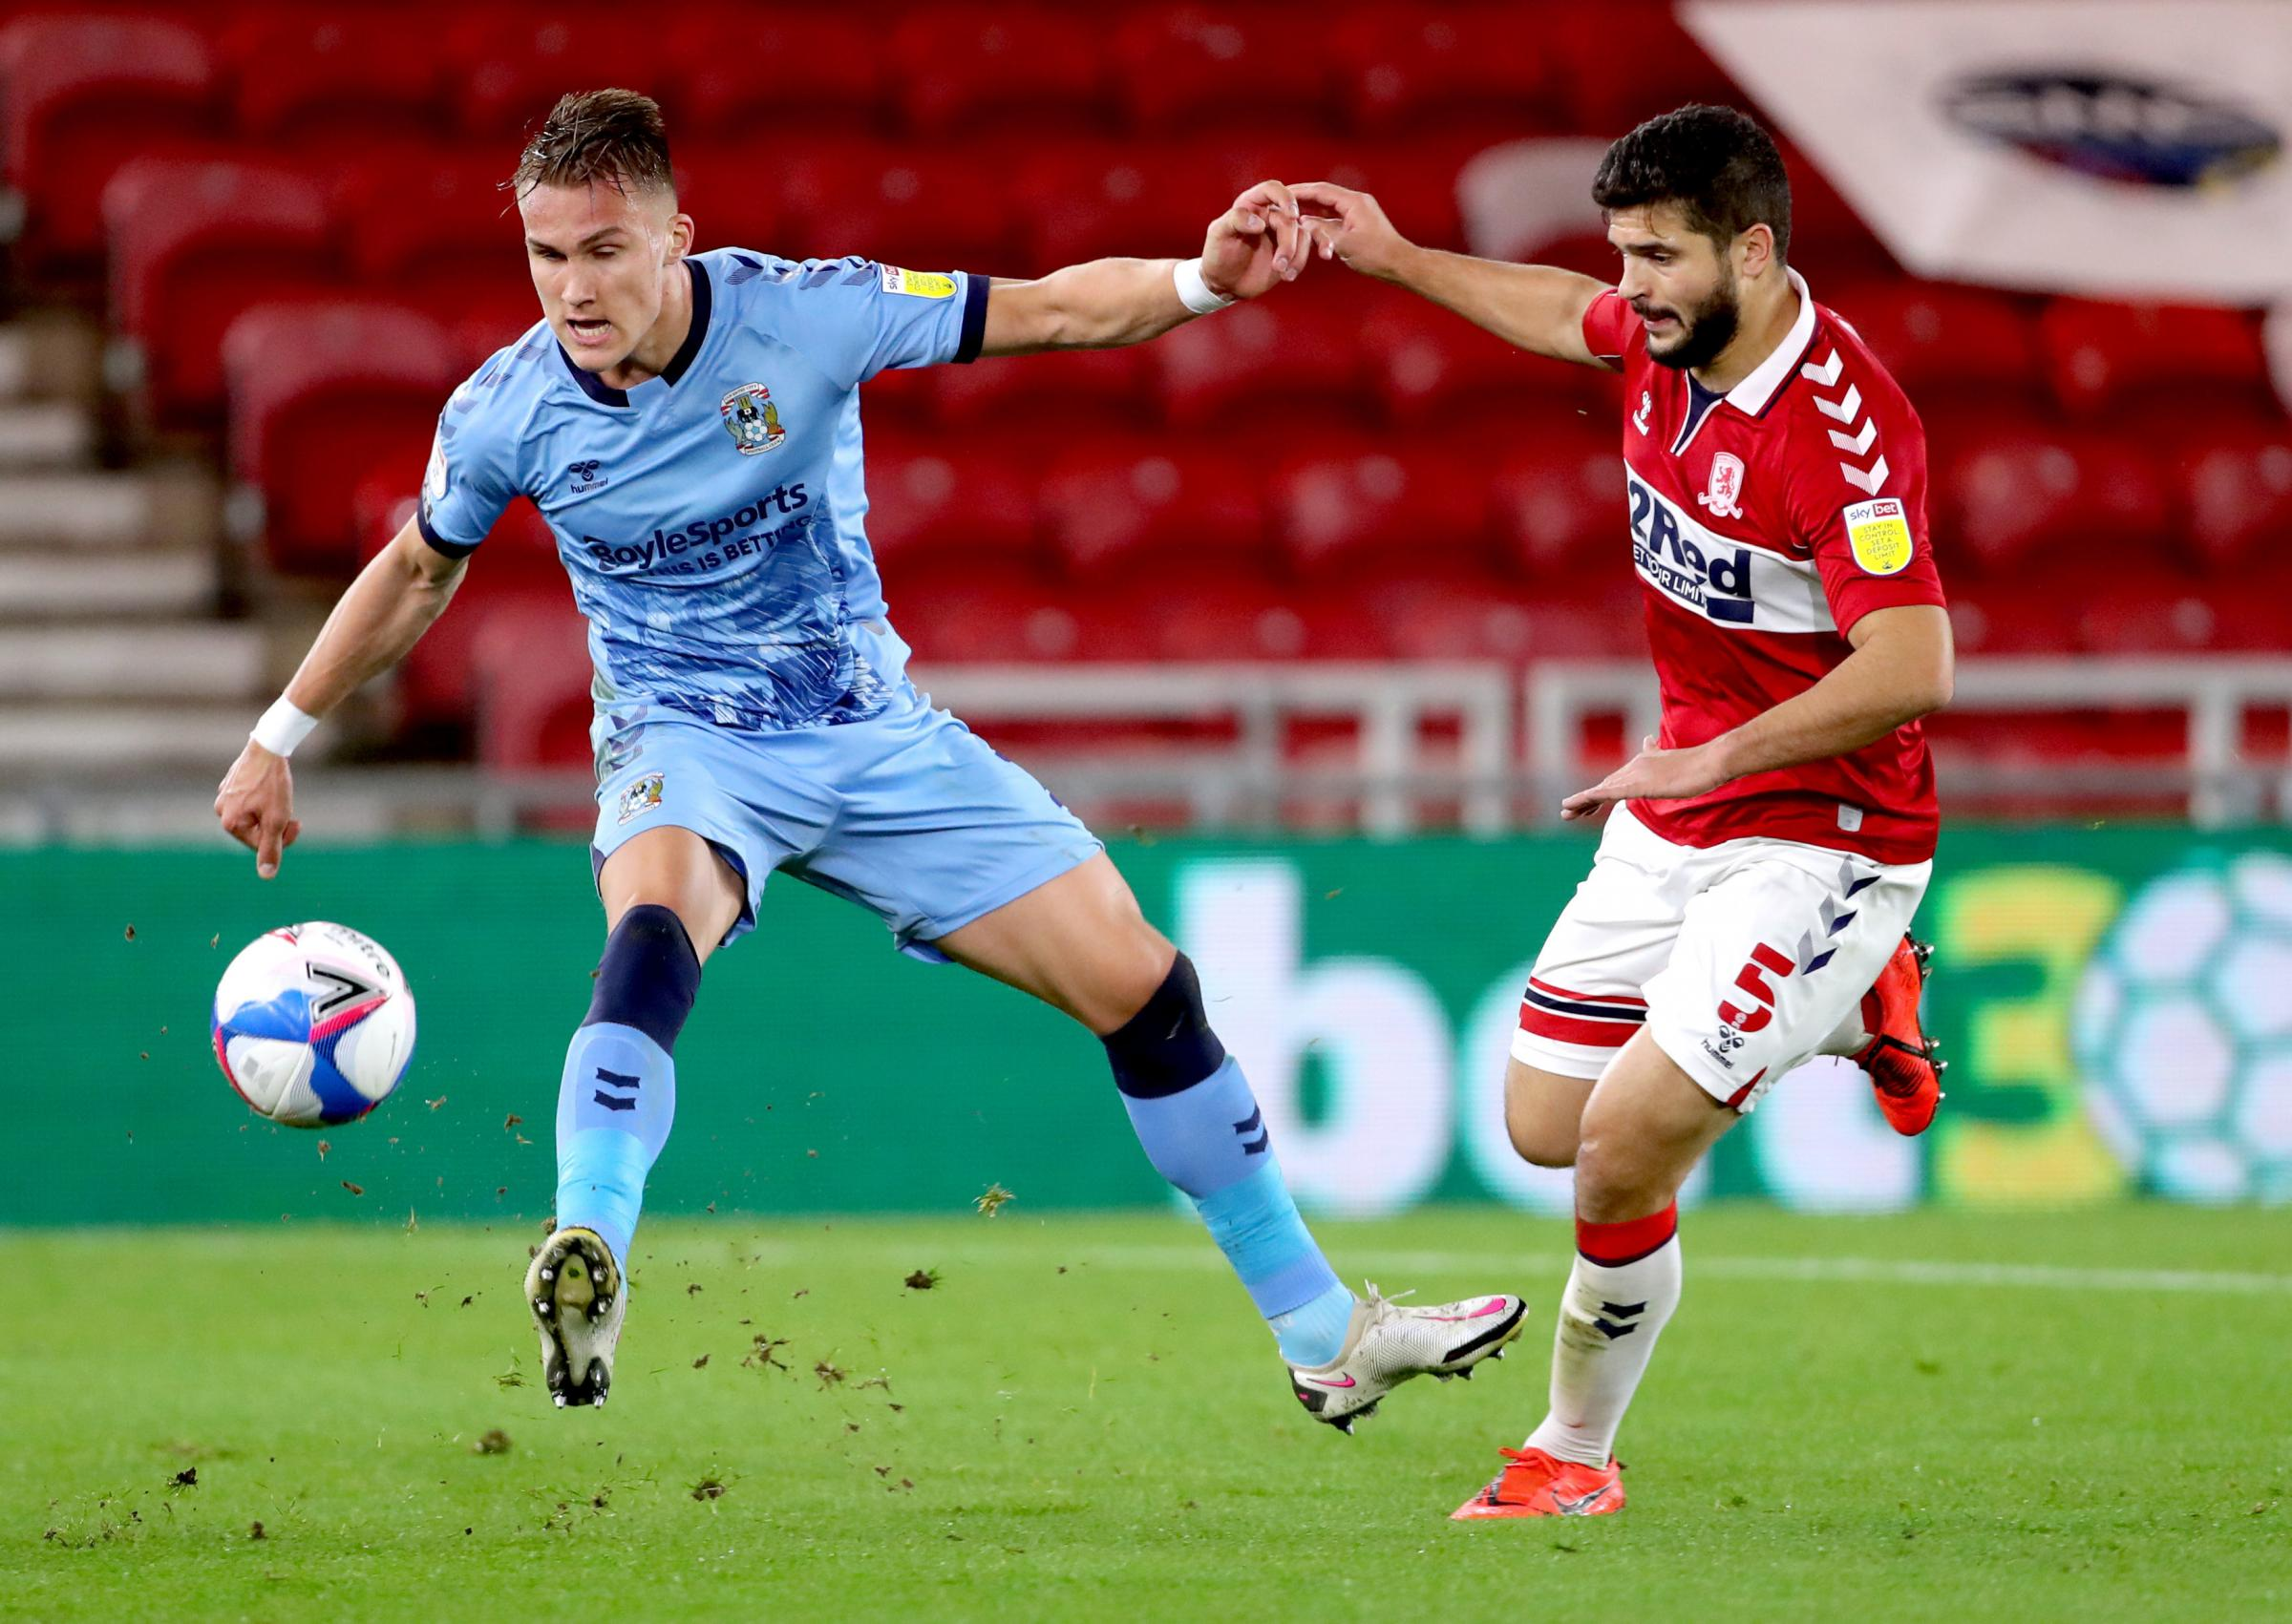 Brighton's Leo Ostigard is set to make his Stoke debut in Carabao Cup